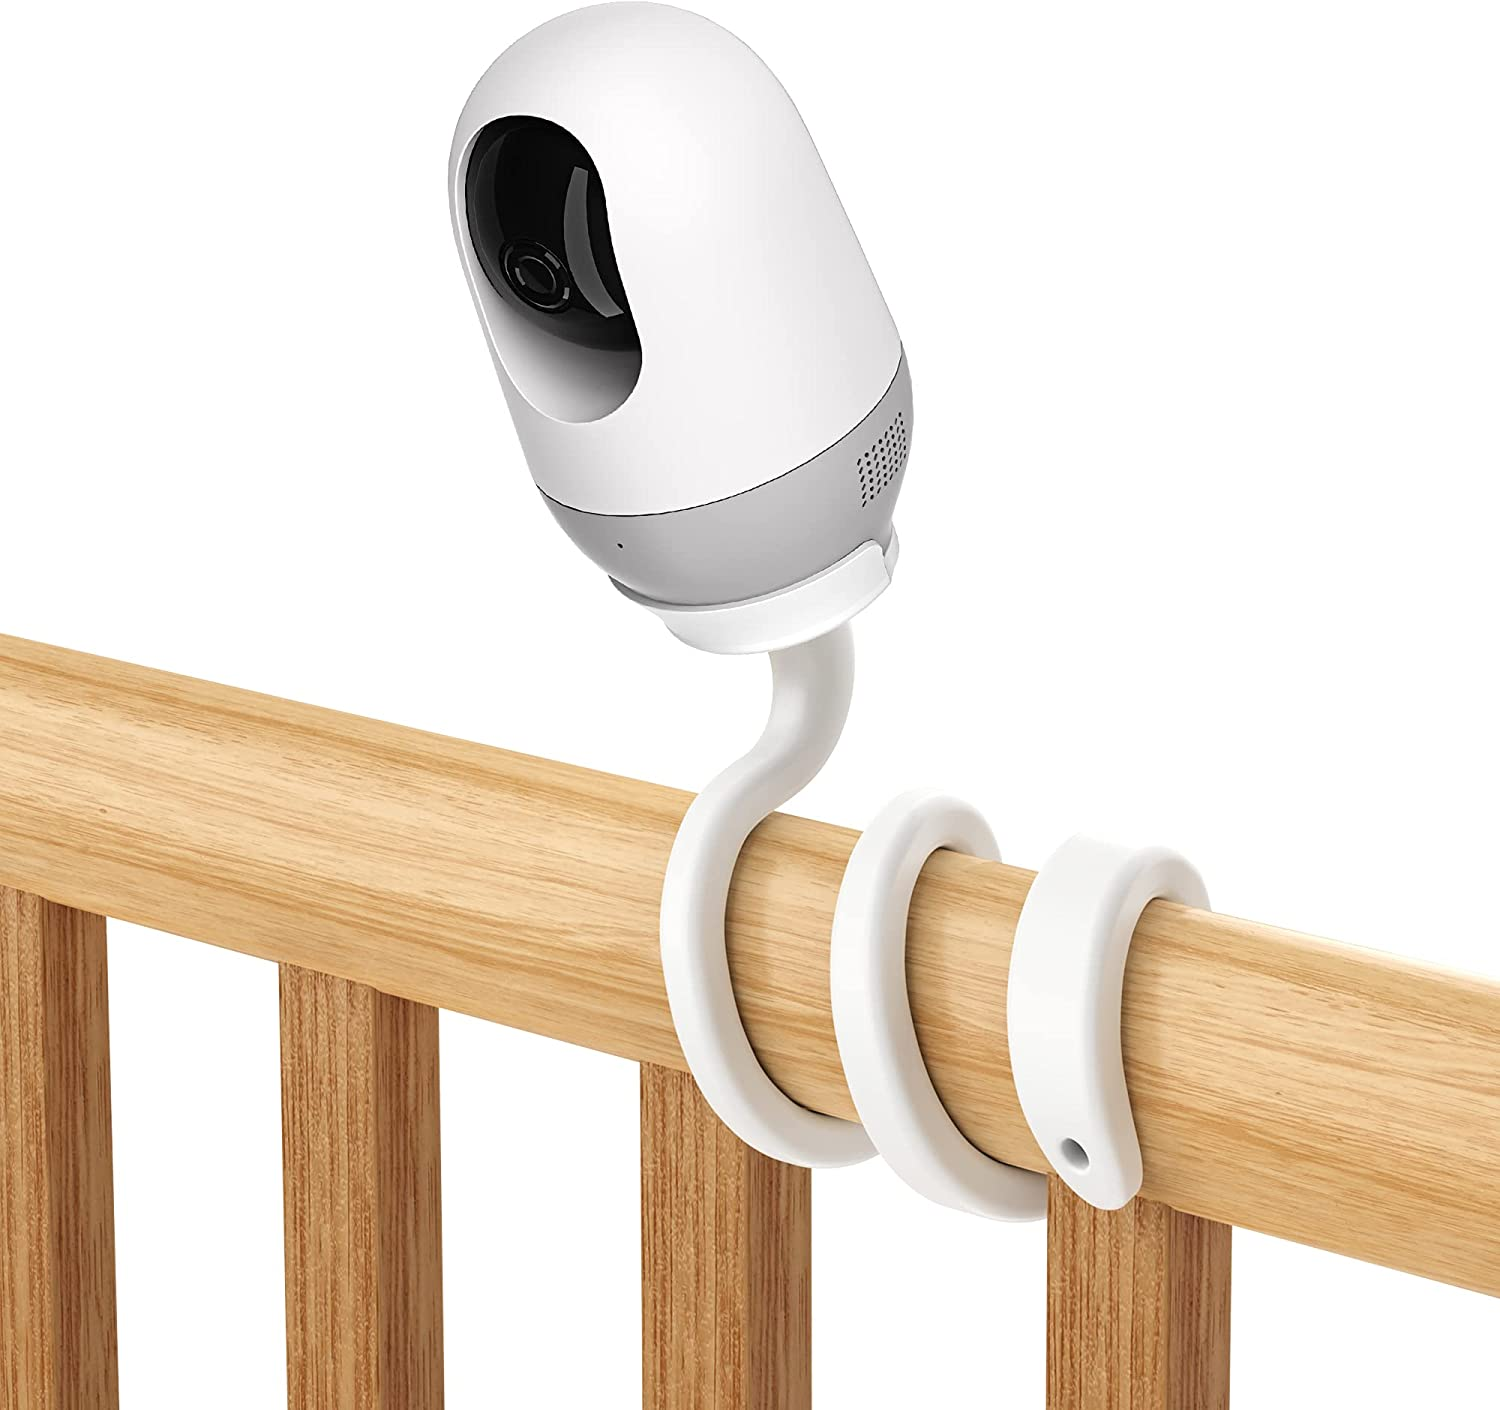 Aobelieve Flexible Mount for Nooie Baby Monitor